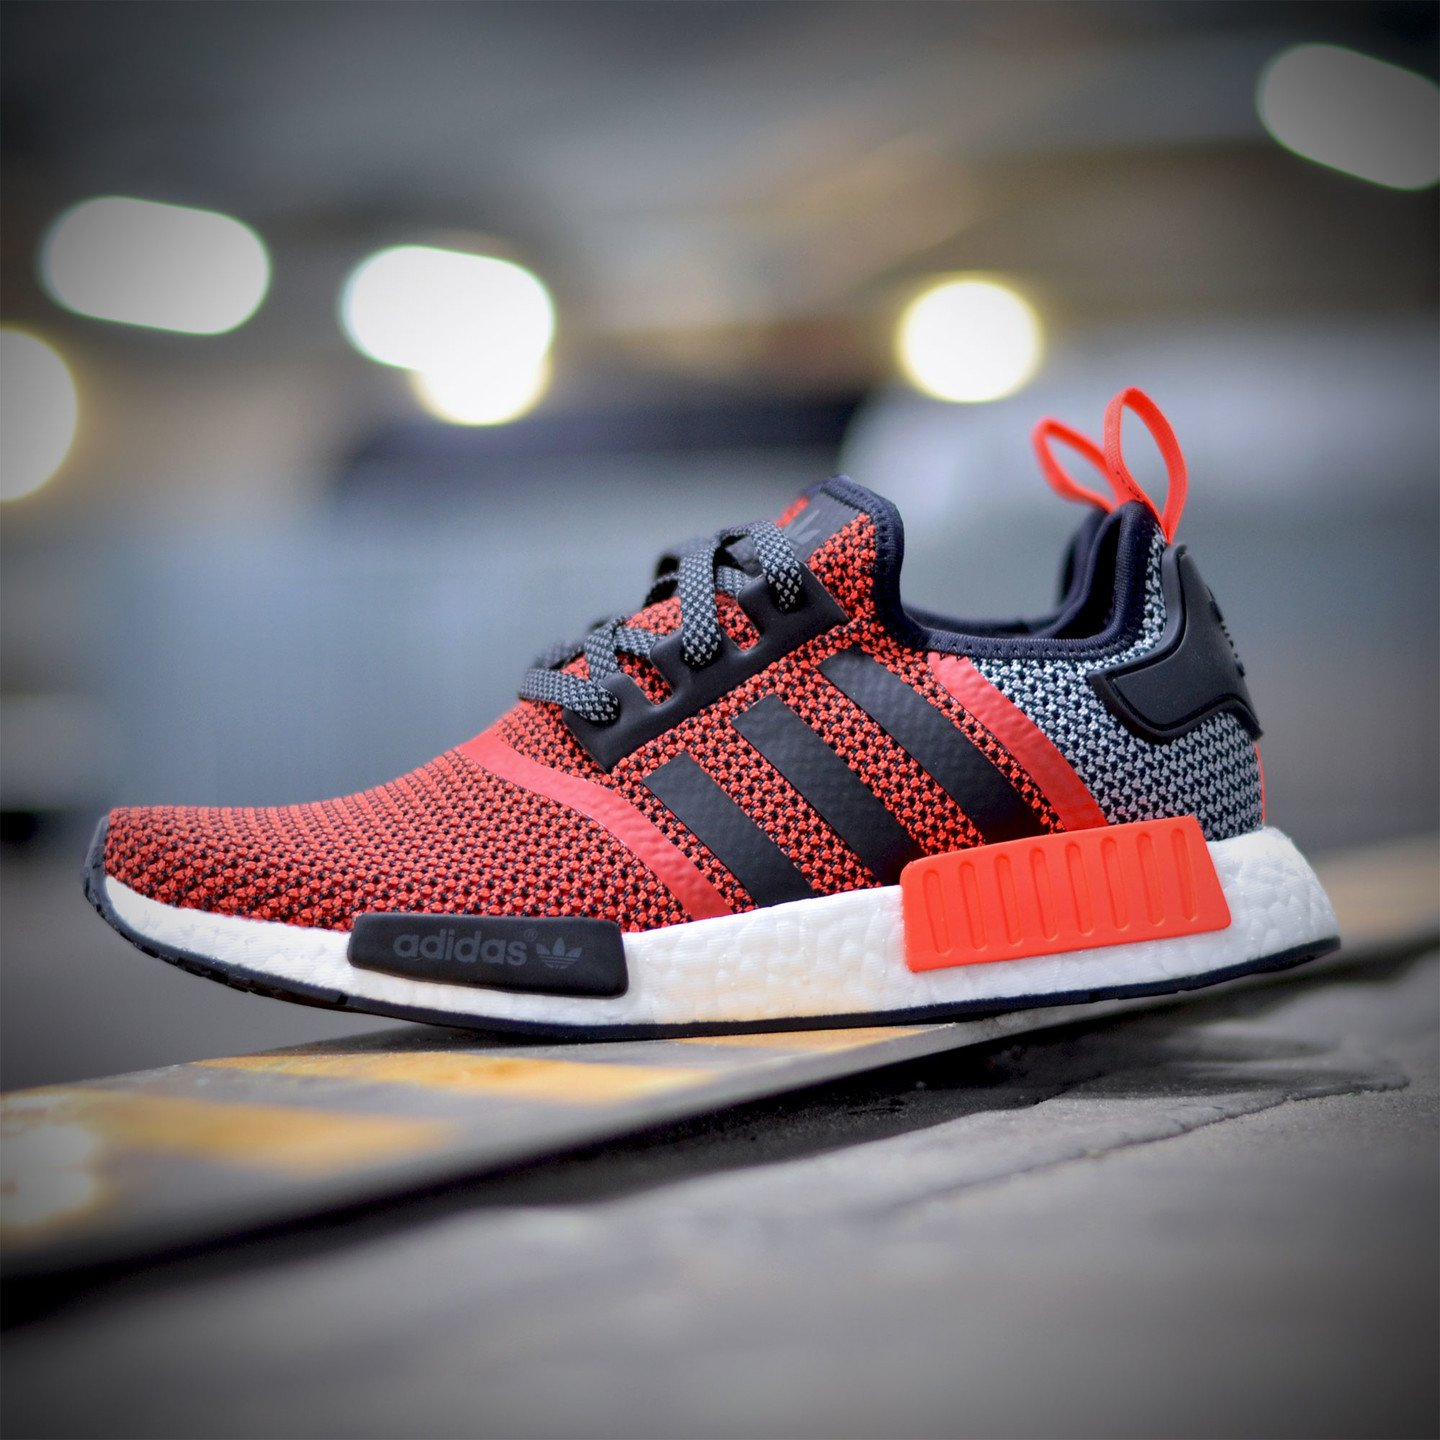 Adidas NMD R1 Runner Lush Red / Core Black S79158-43.33